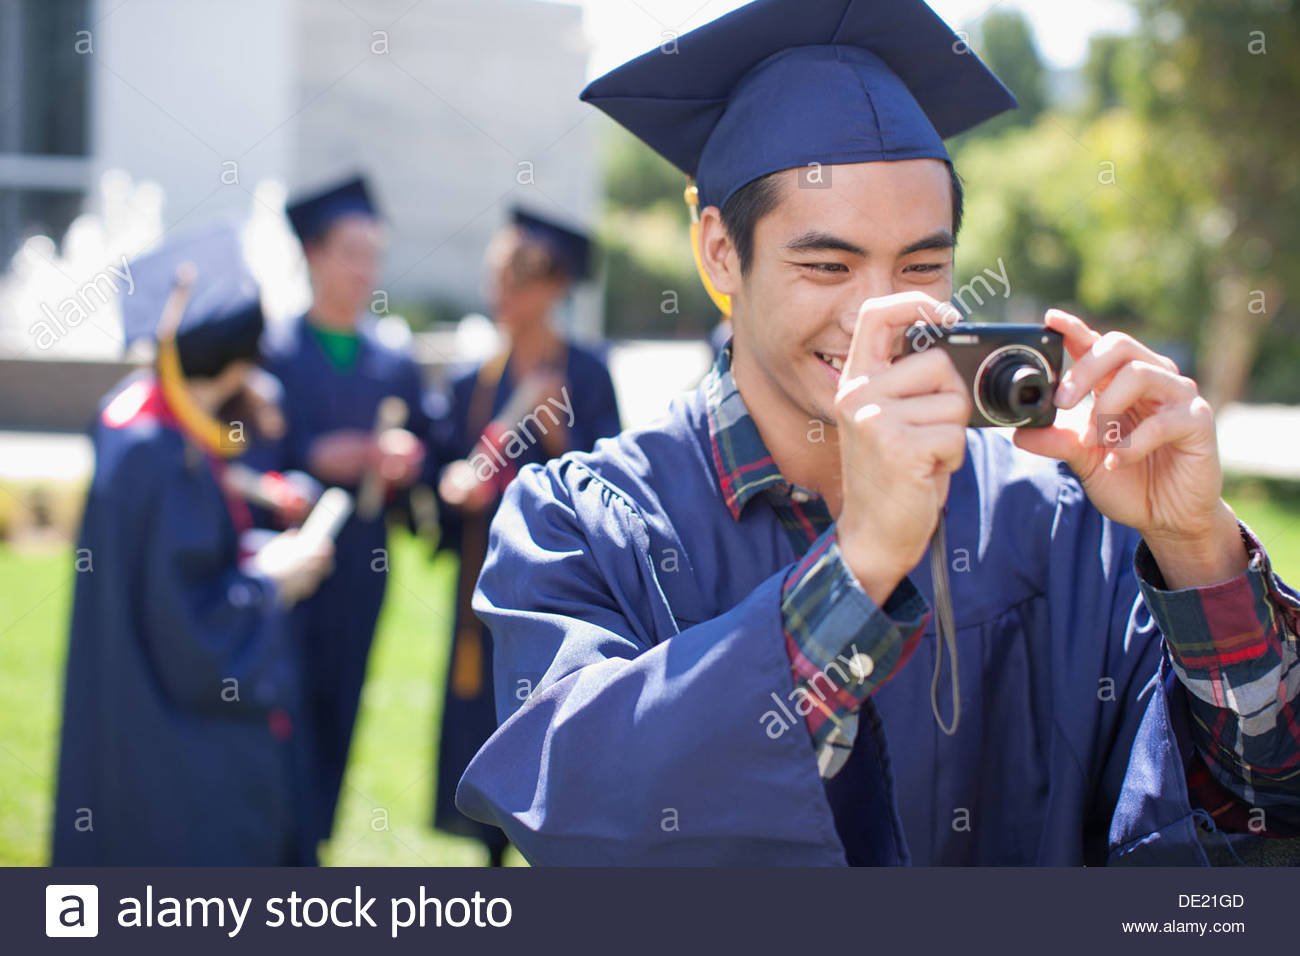 Graduate taking photograph - Stock Image